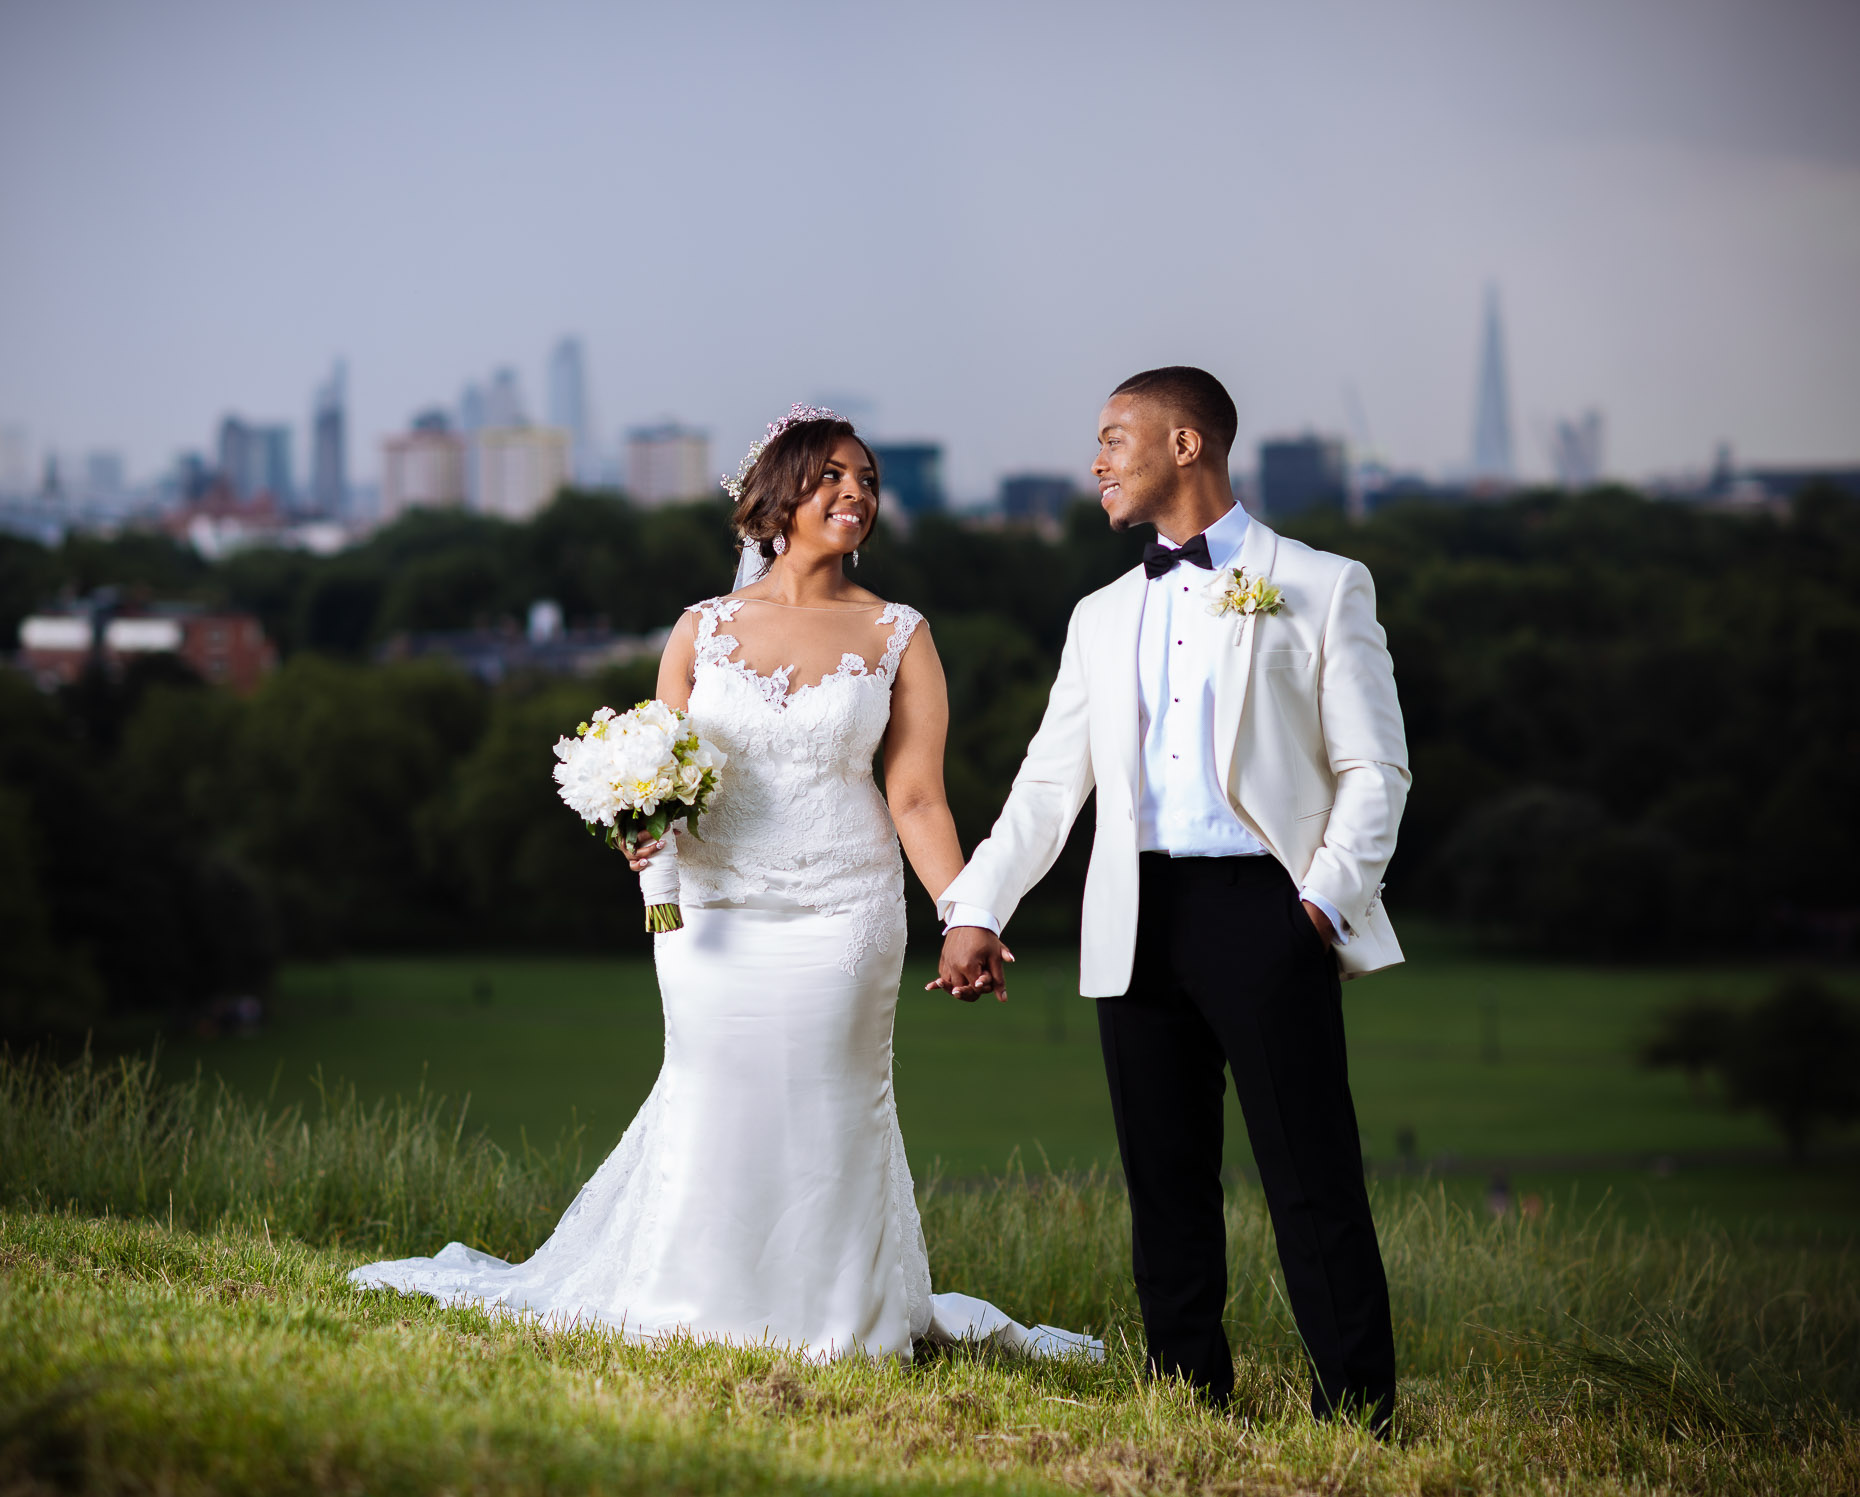 primrose-hill-london-wedding-shoot-photography-profoto-15